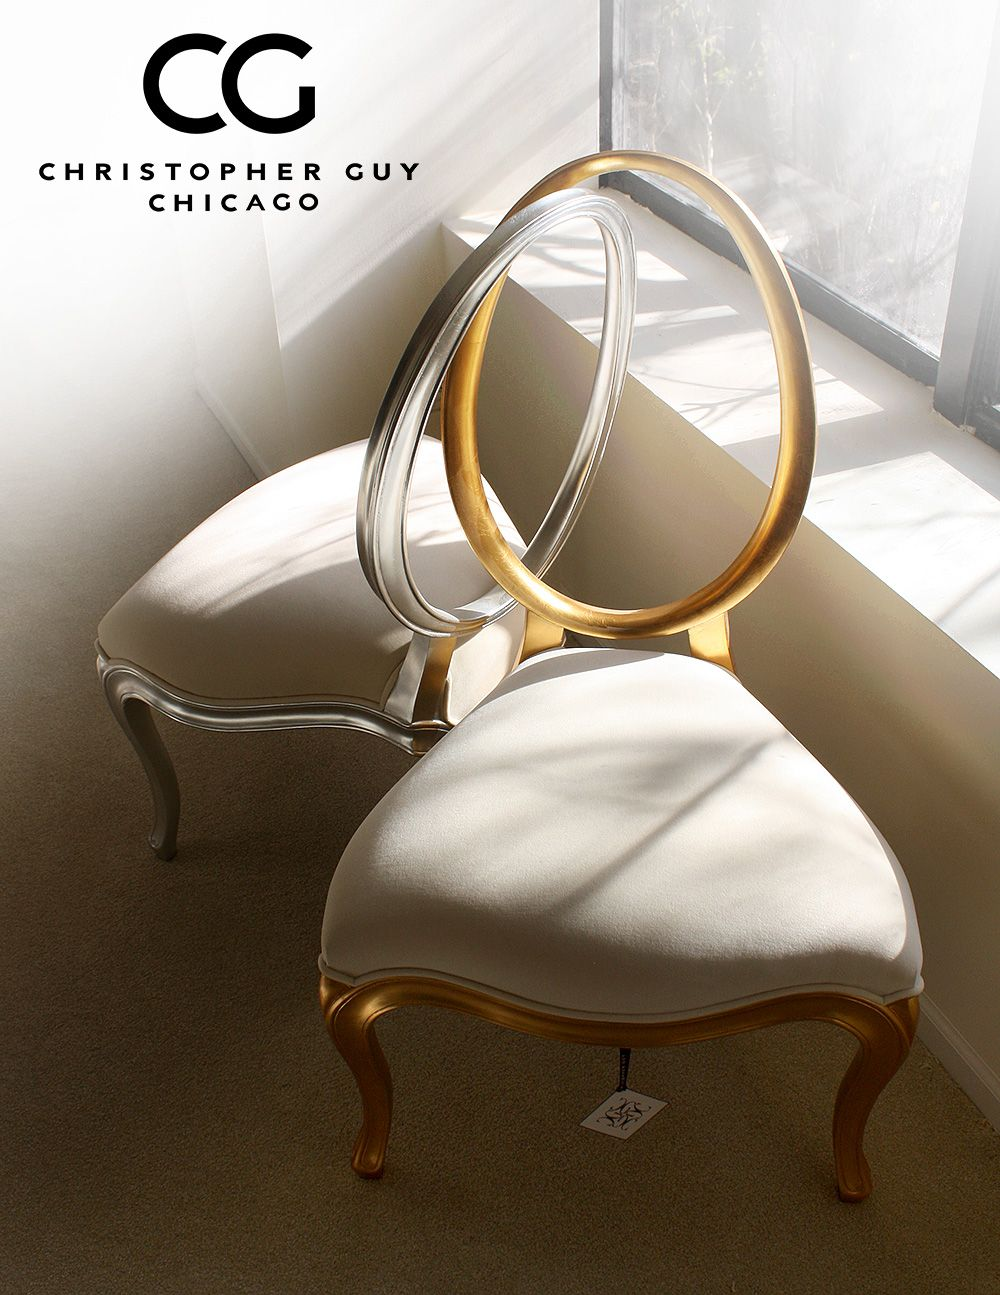 Stupendous Chicago Luxury Furniture Floor Sample Sale Ends 12 15 Gmtry Best Dining Table And Chair Ideas Images Gmtryco